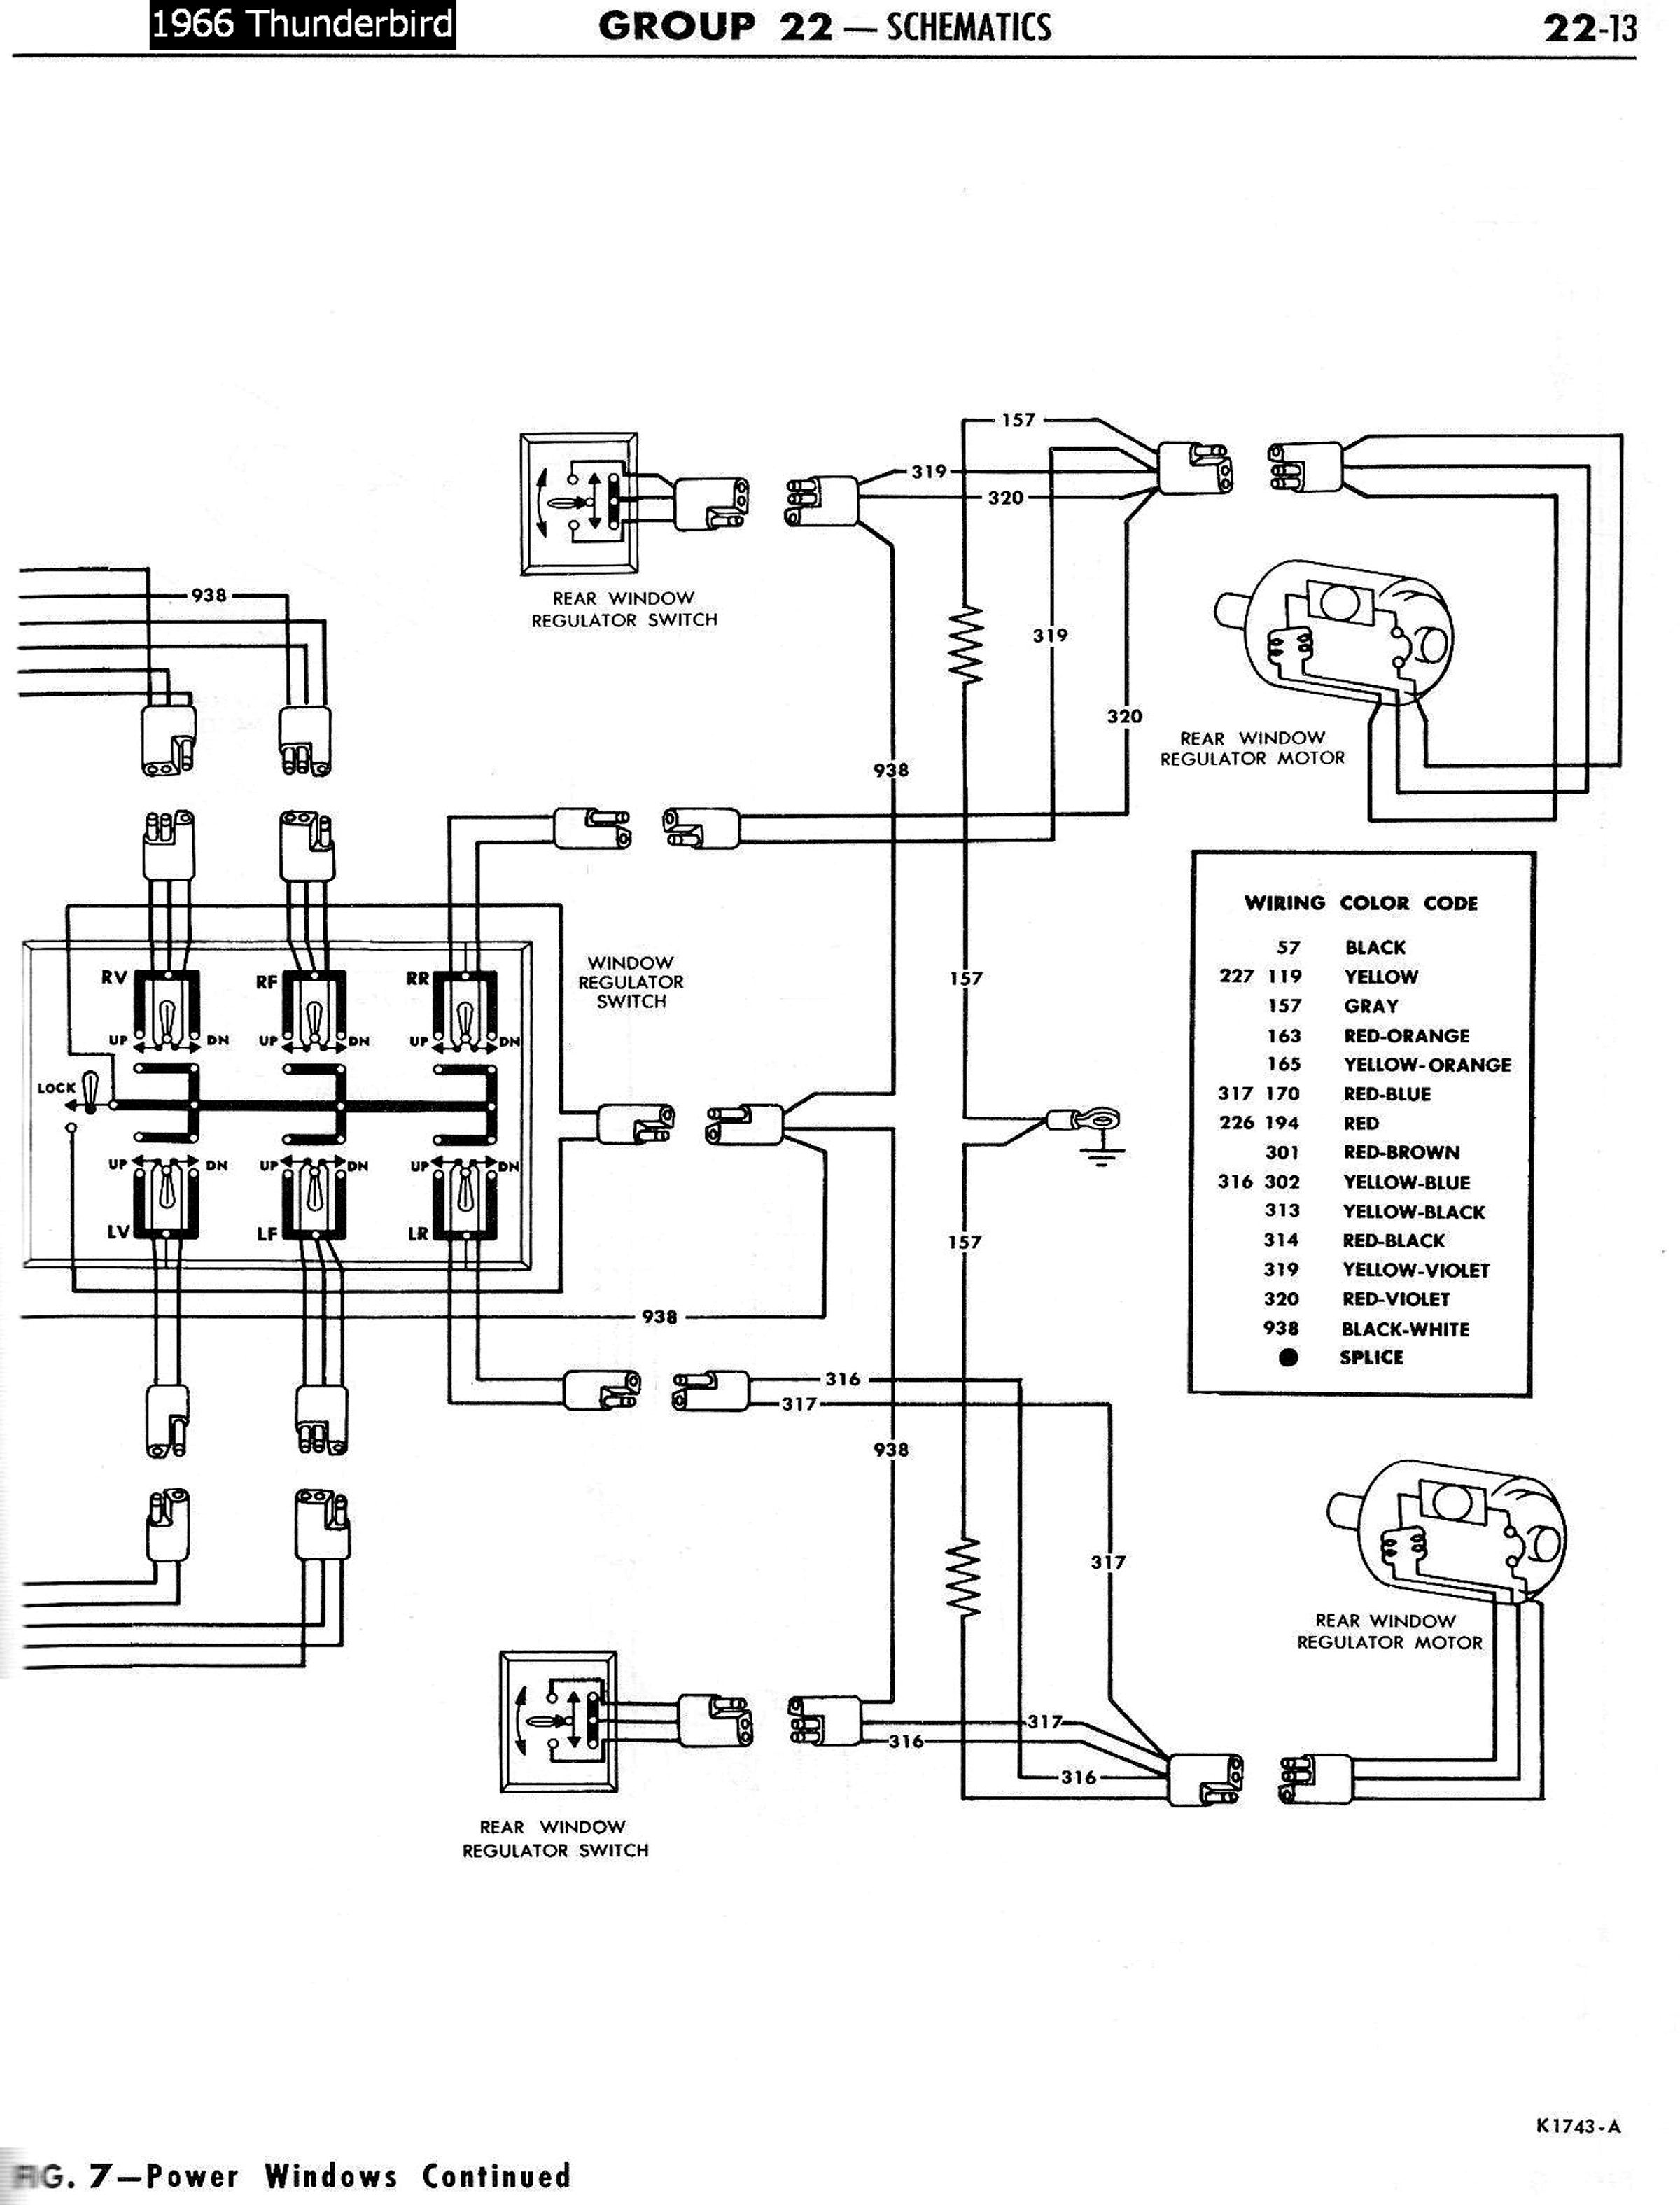 1965 Ford Thunderbird Wiring Diagram Reveolution Of 1968 Alternator 1958 68 Electrical Schematics Rh Squarebirds Org Gauge